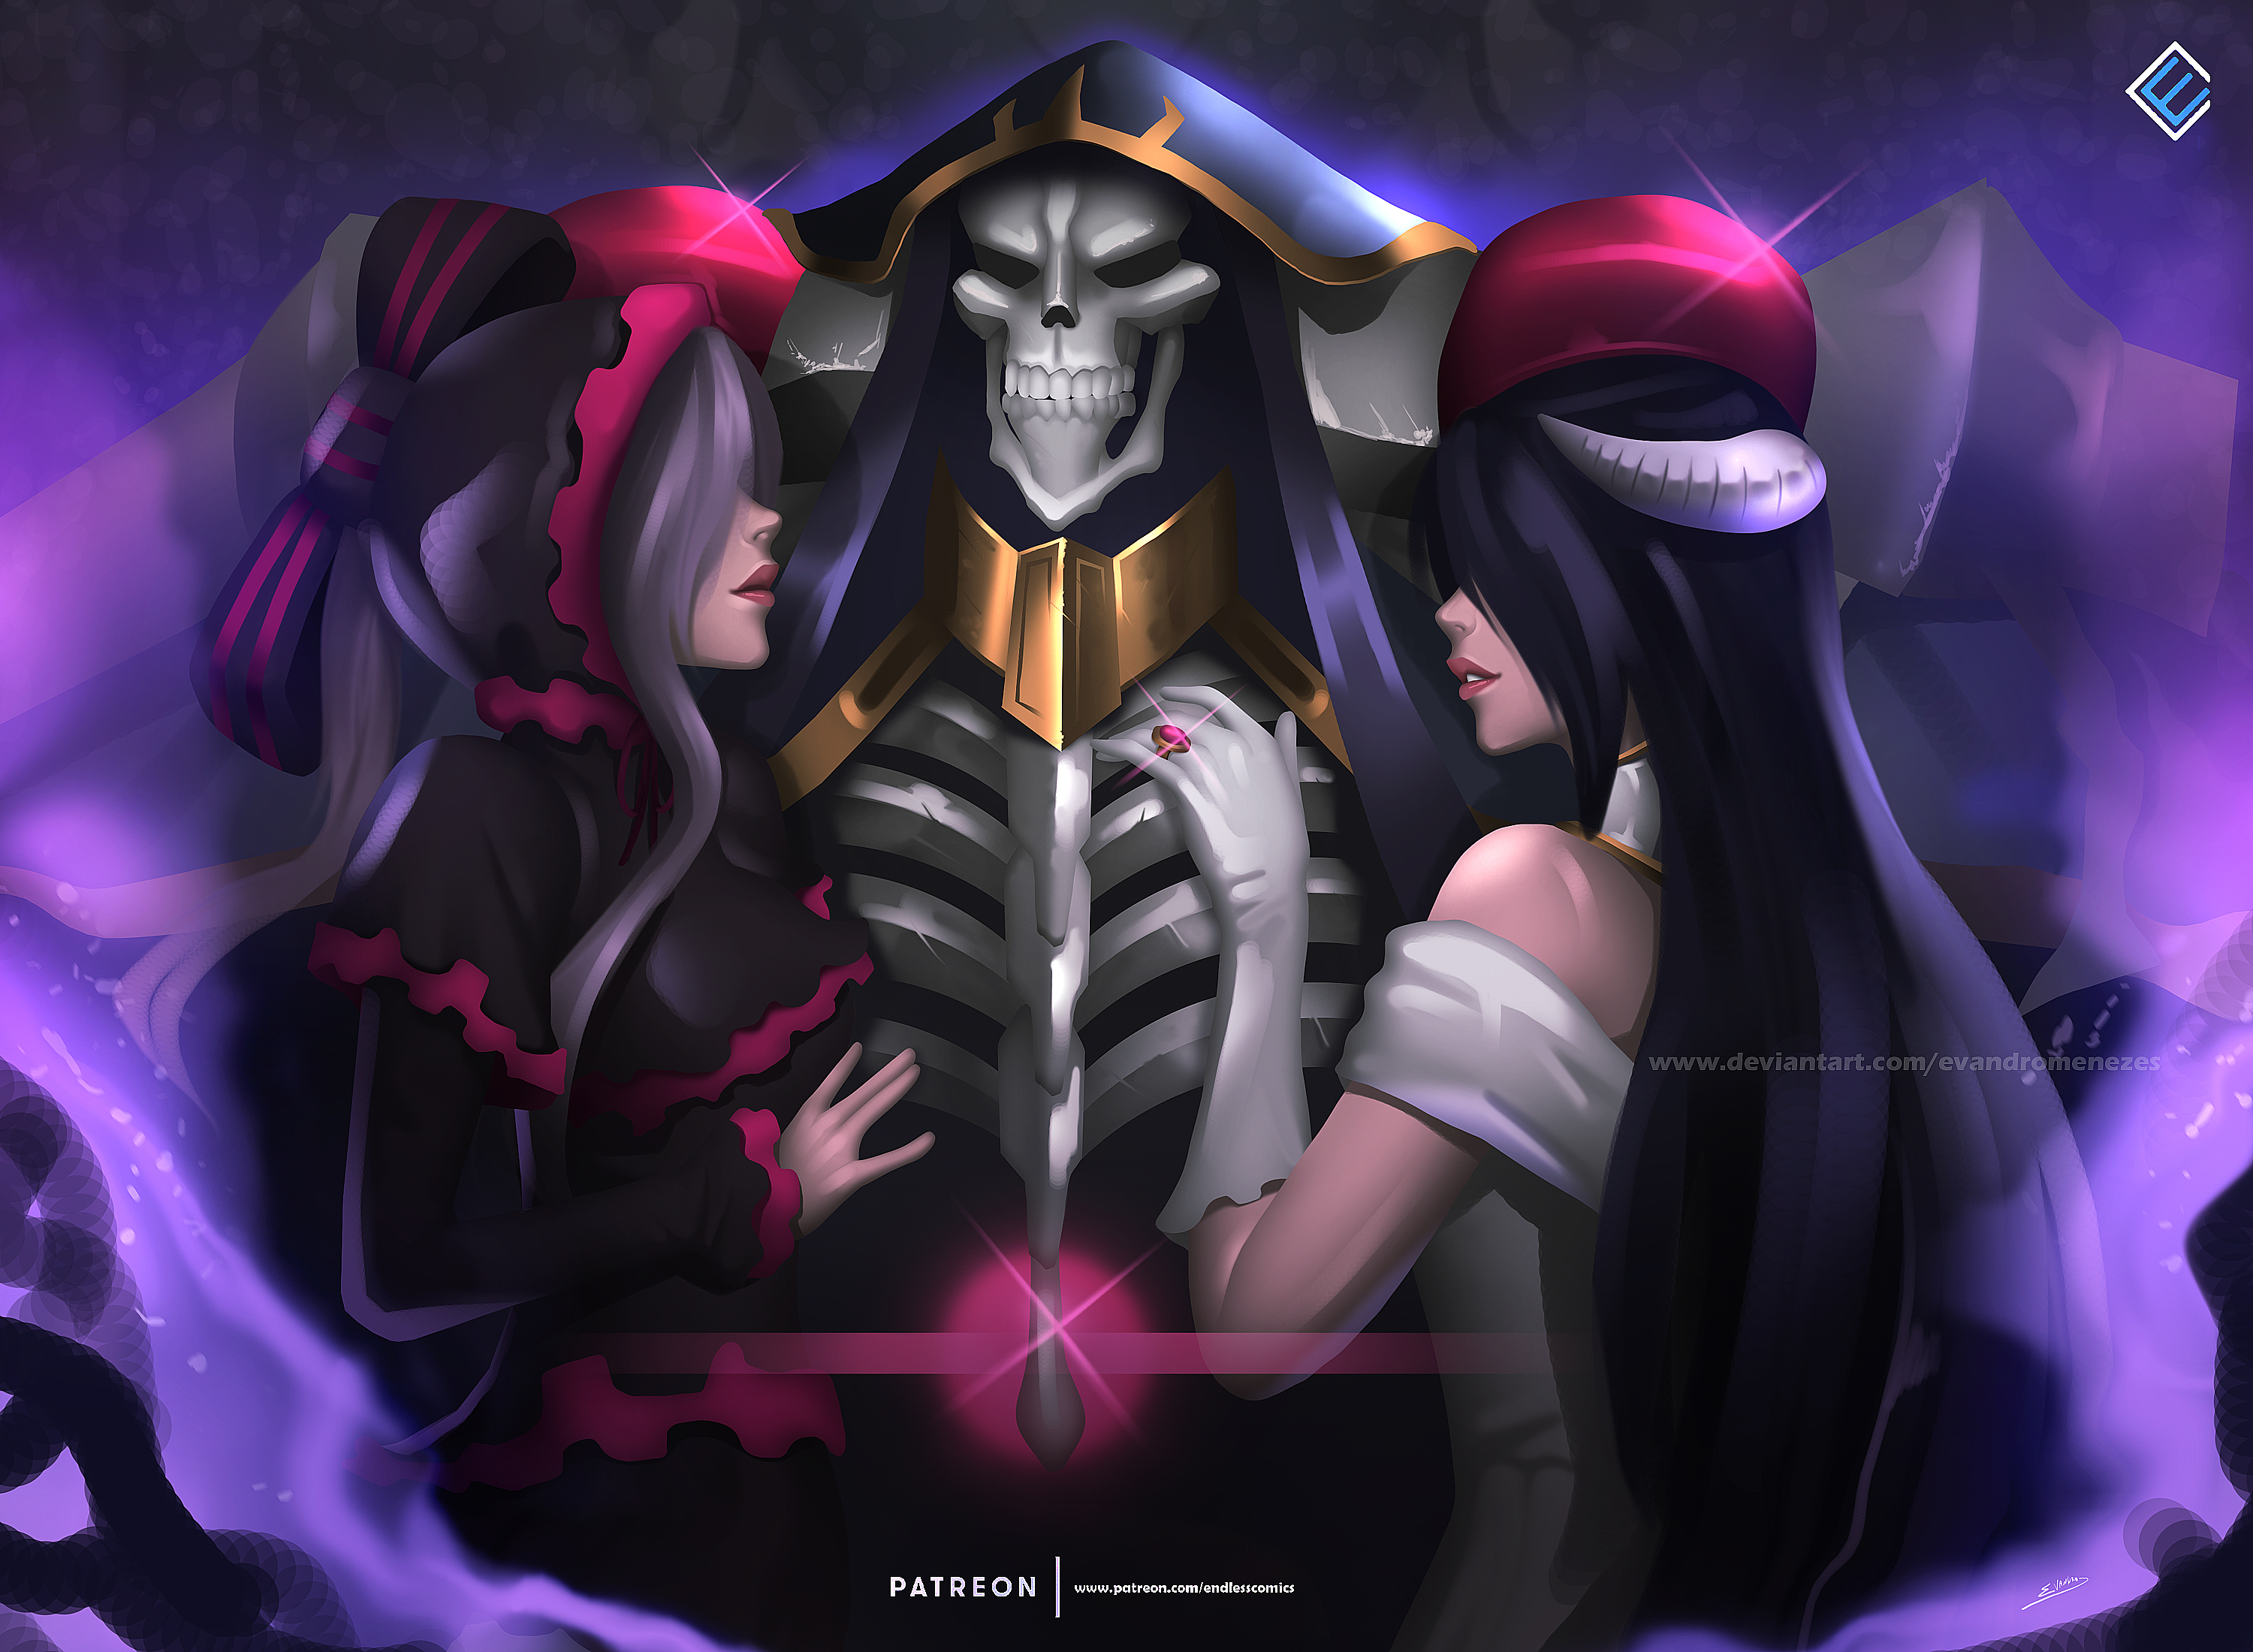 750x1334 Shalltear Bloodfallen Ainz Ooal Gown Albedo Iphone 6 Iphone 6s Iphone 7 Hd 4k Wallpapers Images Backgrounds Photos And Pictures